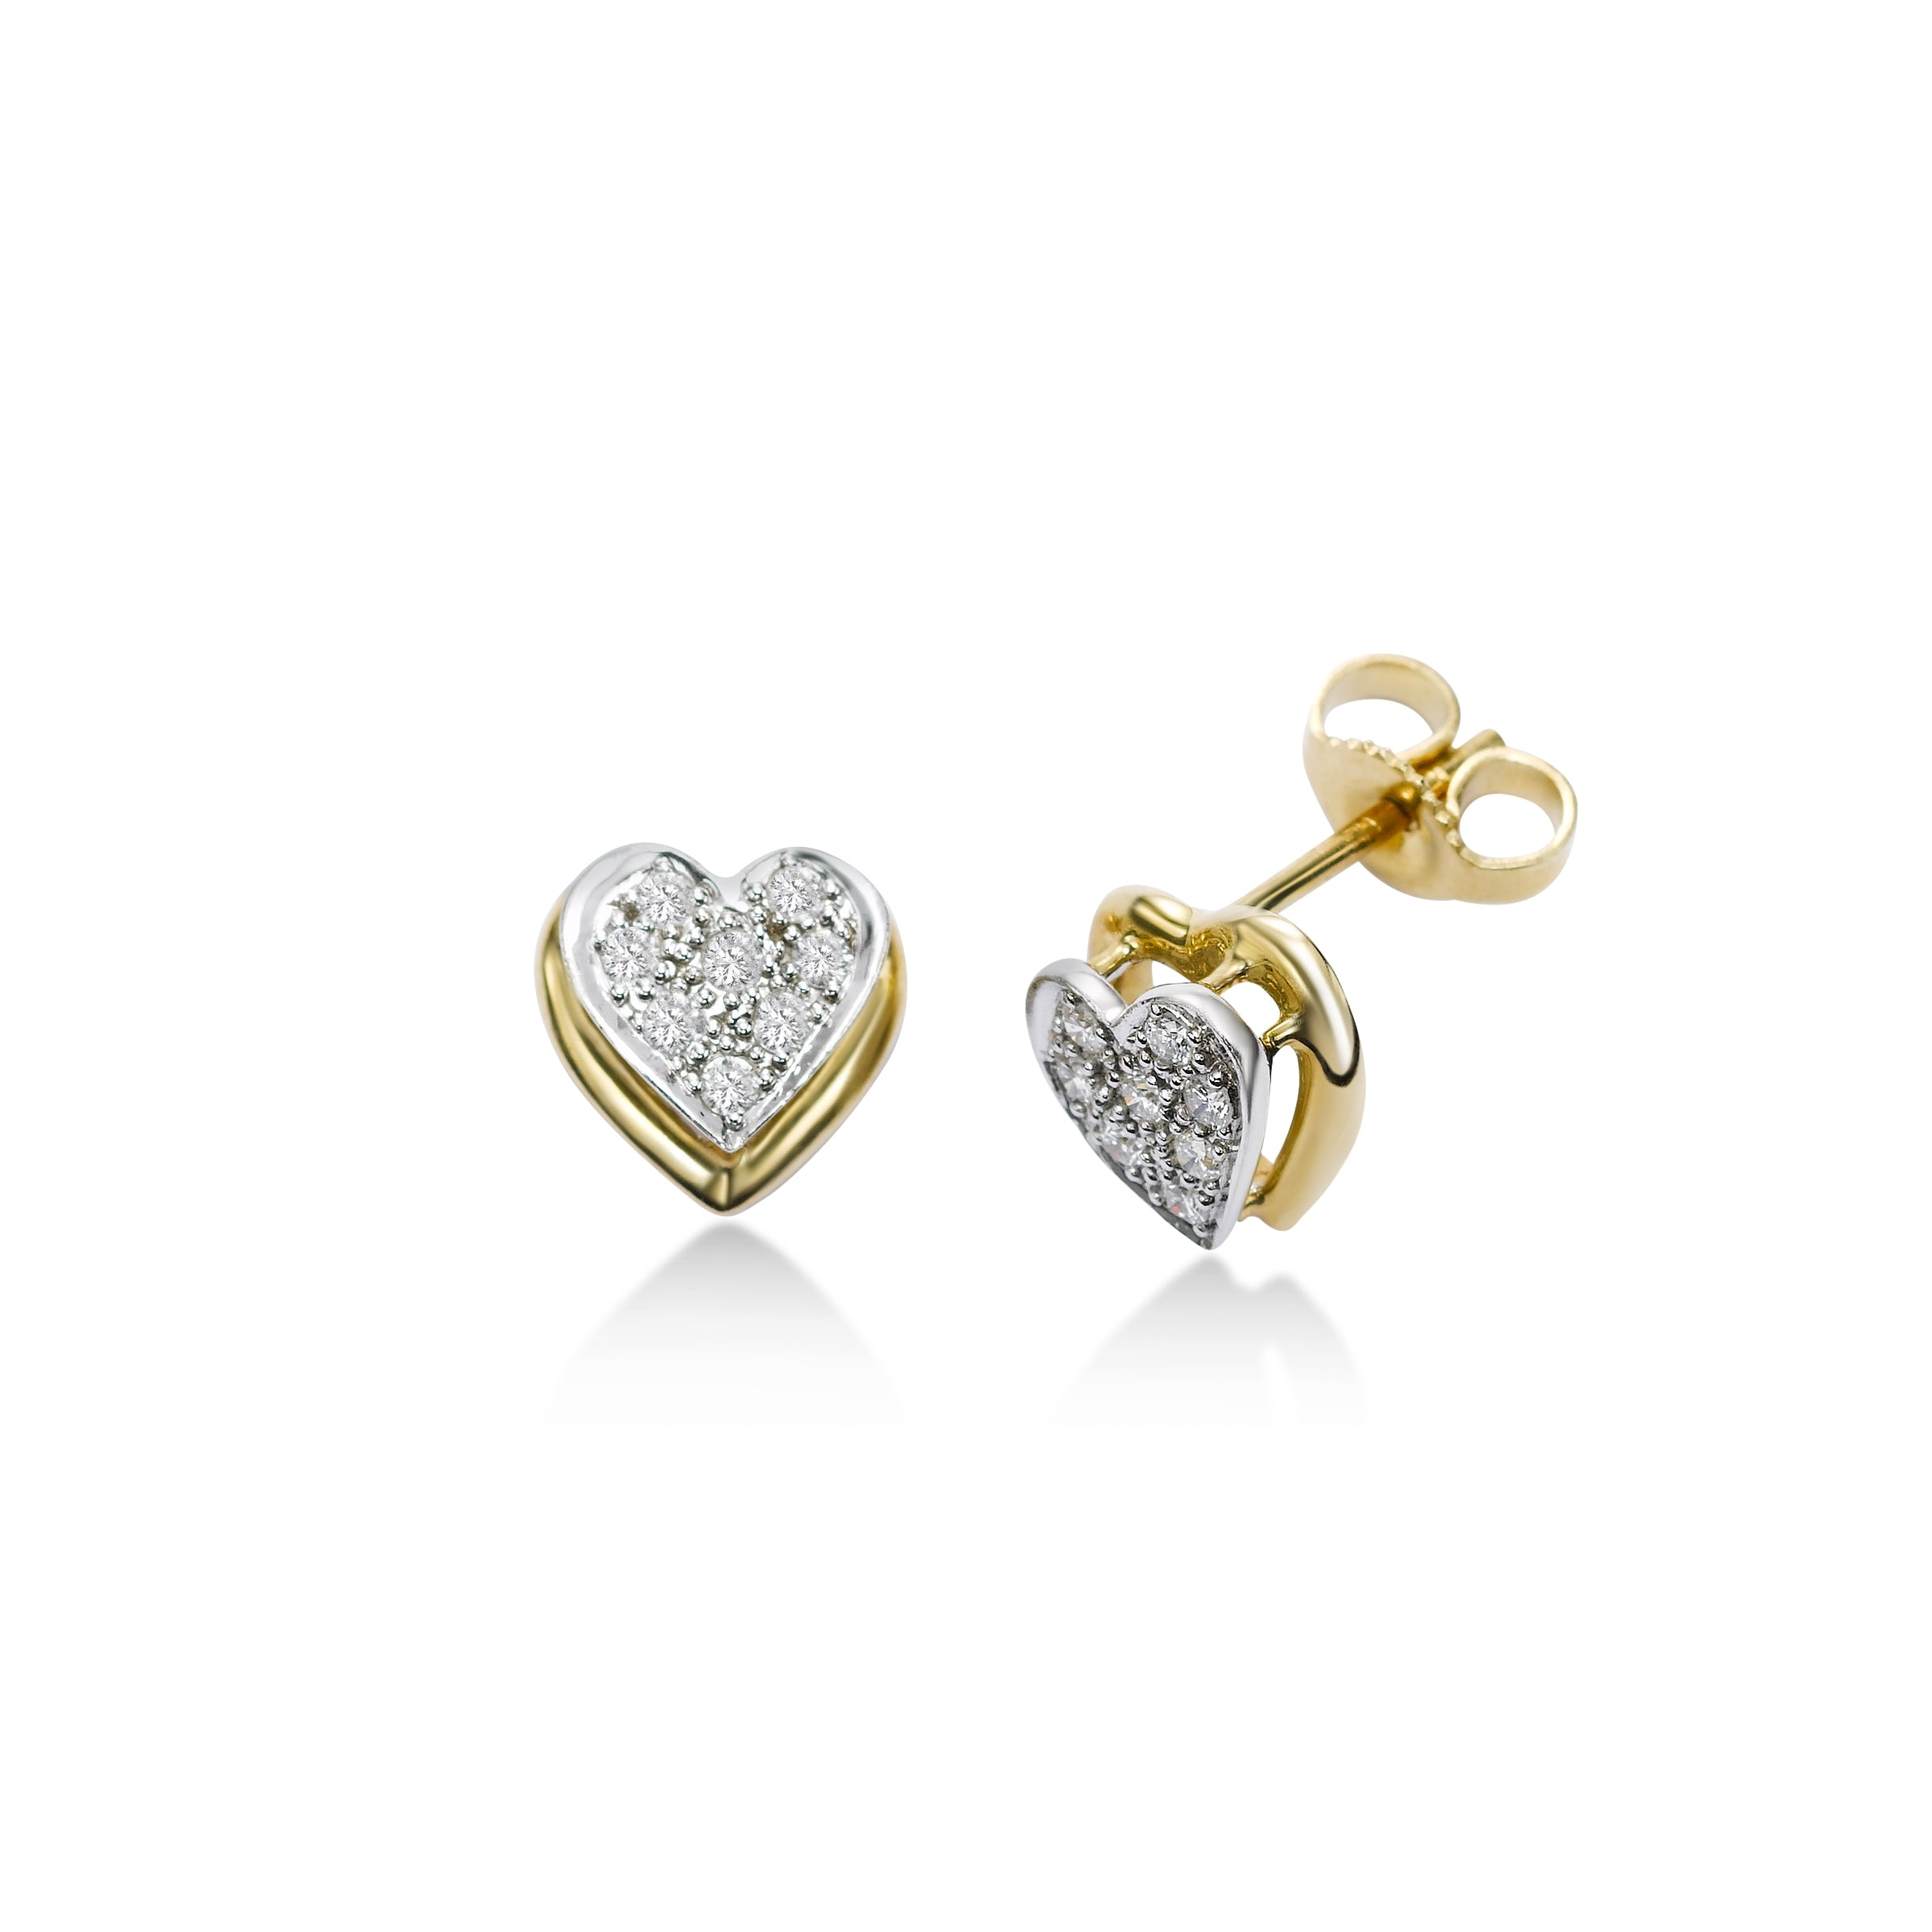 Pavé Diamond Floating Heart Stud Earrings, 14 Karat Gold